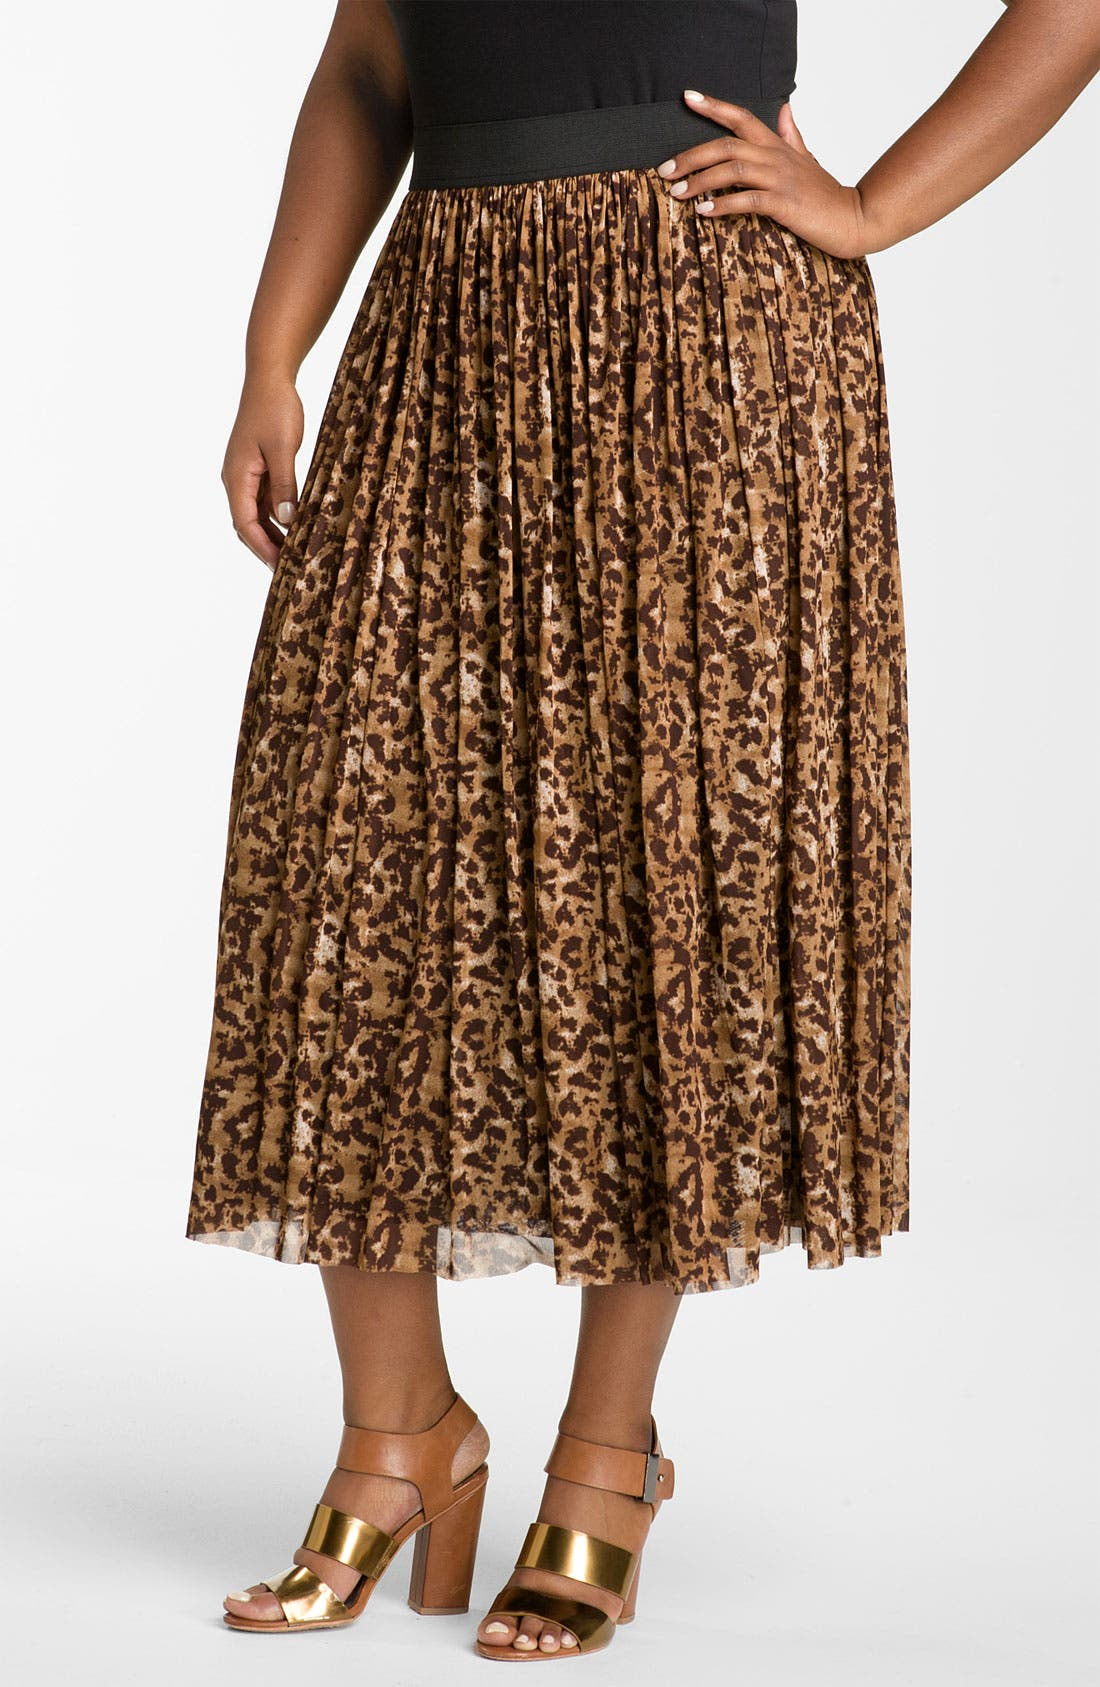 Main Image - Vince Camuto 'Textured Spots' Animal Print Skirt (Plus)